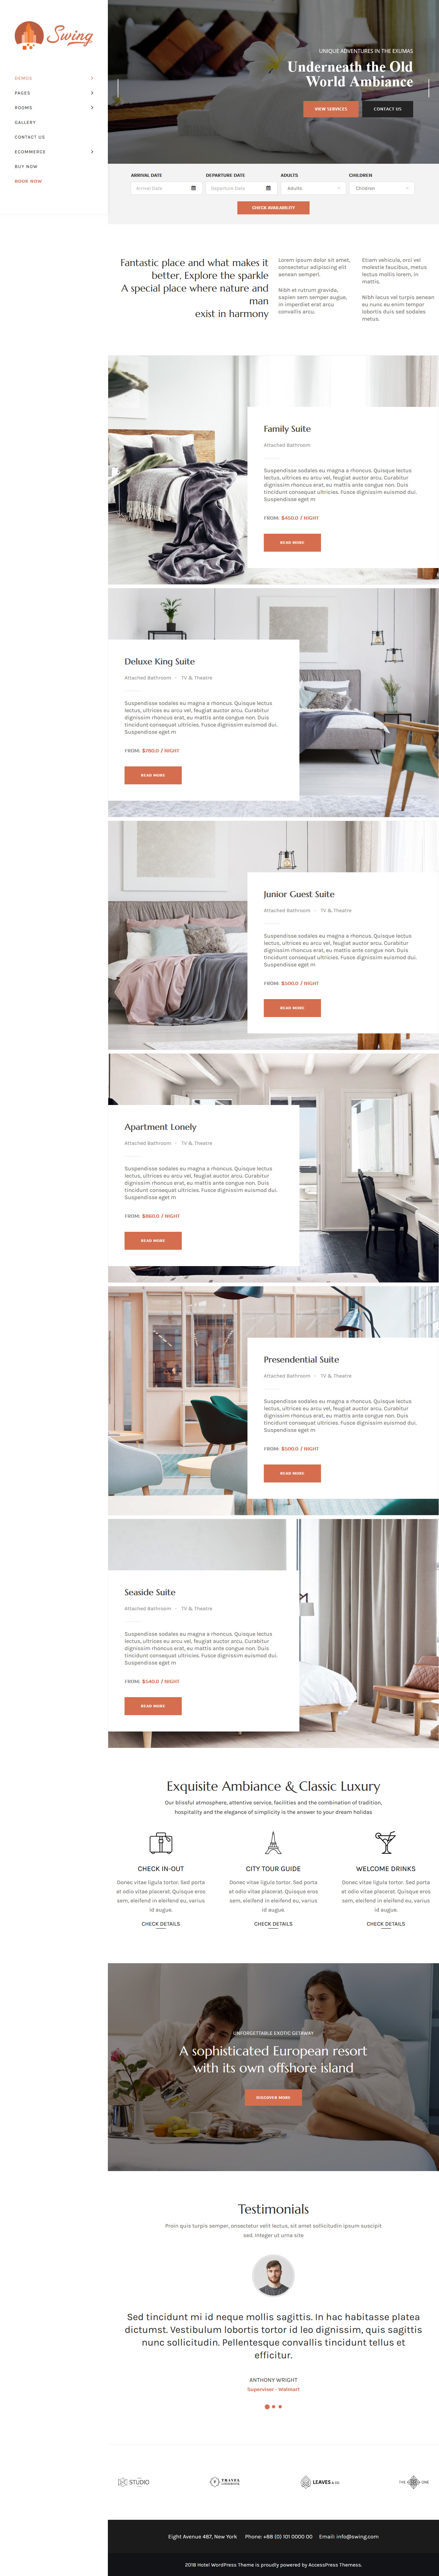 swing hotel and resort wordpress theme demo 3